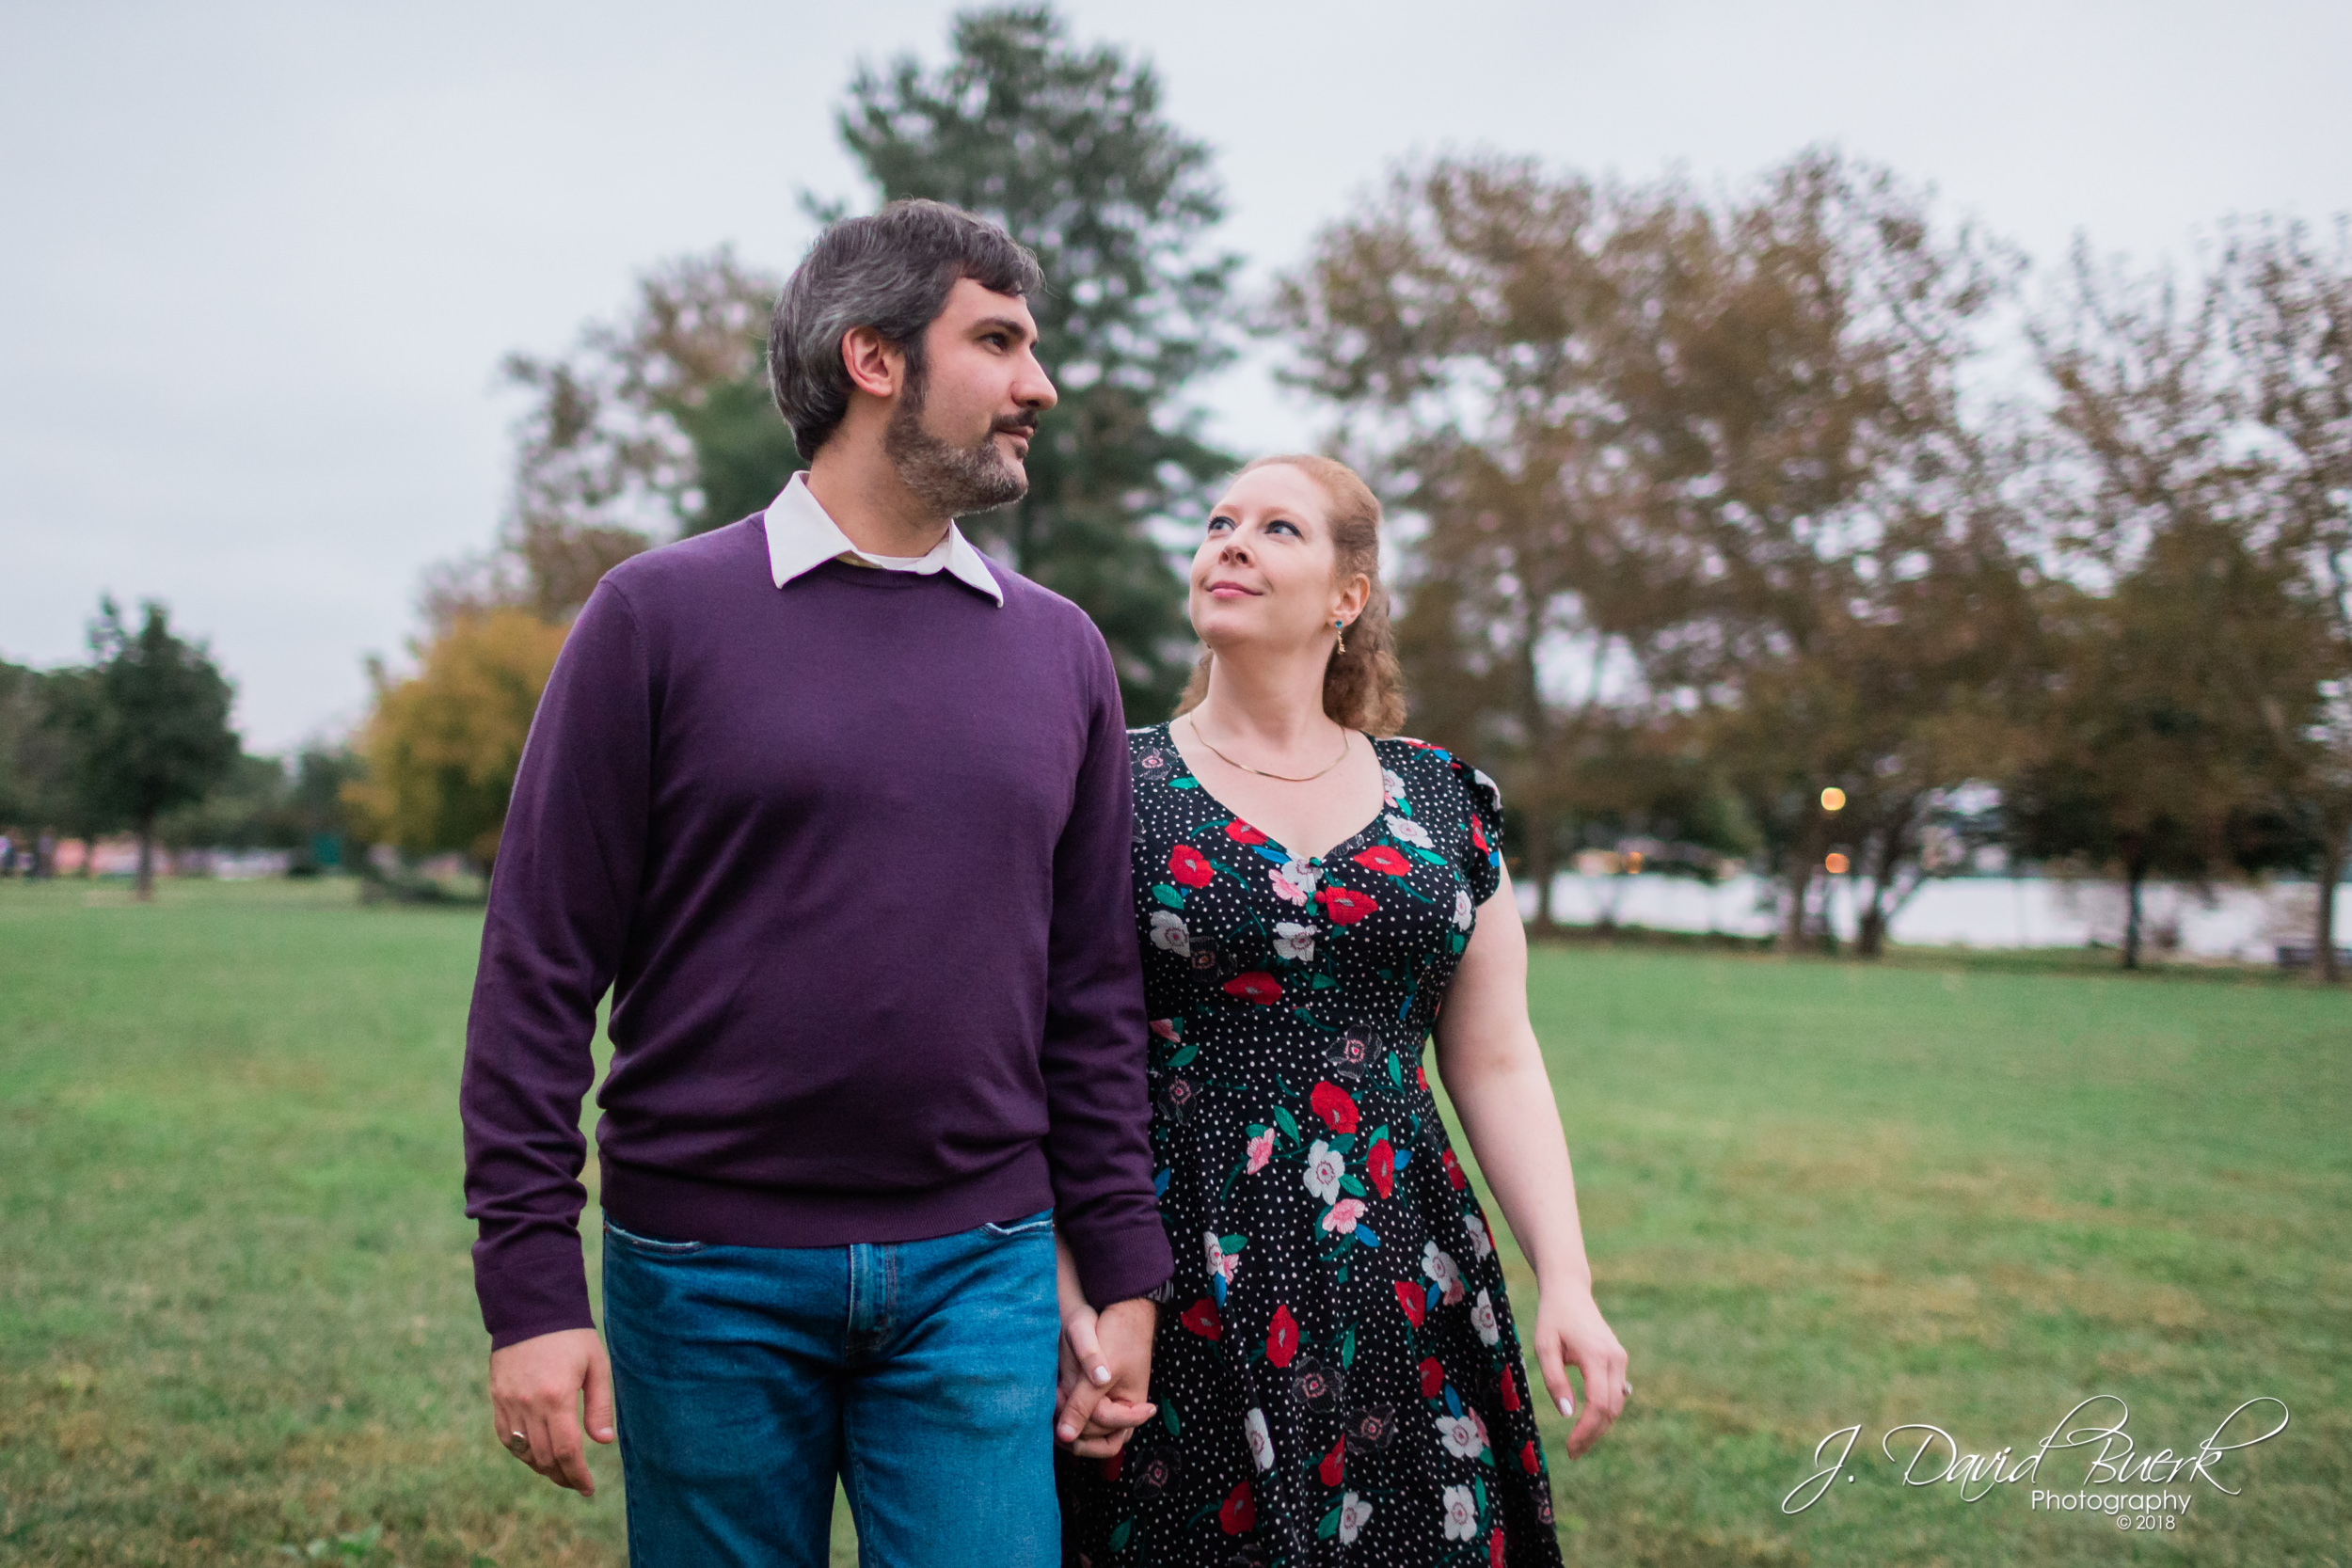 Bayard and Margaret stroll during their engagement session in Alexandria, Virginia.